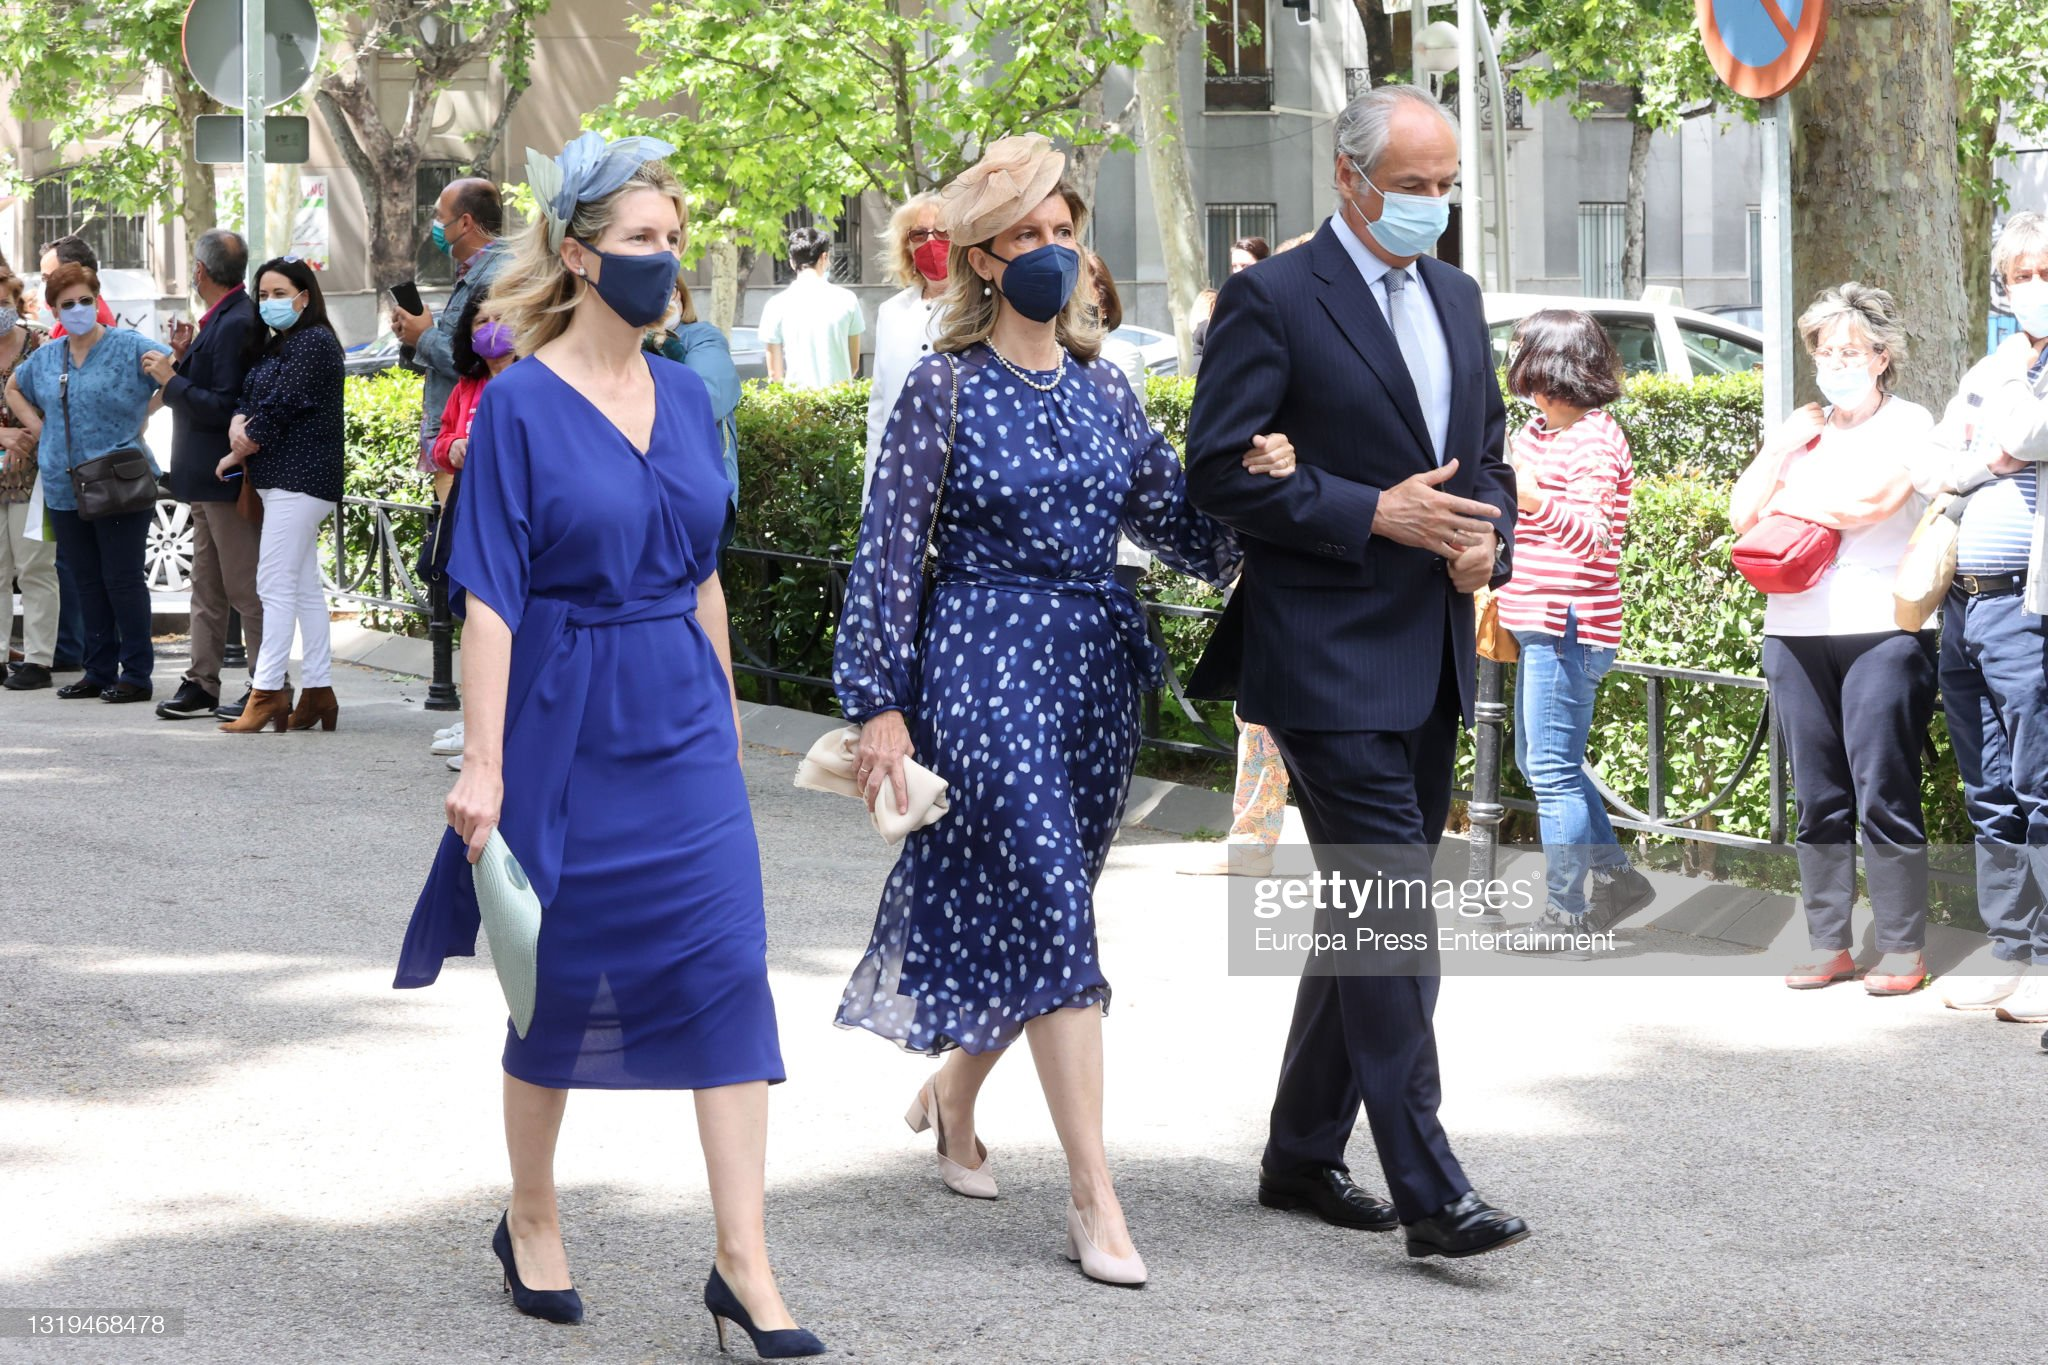 guests-arrive-at-liria-palace-for-the-wedding-of-carlos-fitzjames-y-picture-id1319468478